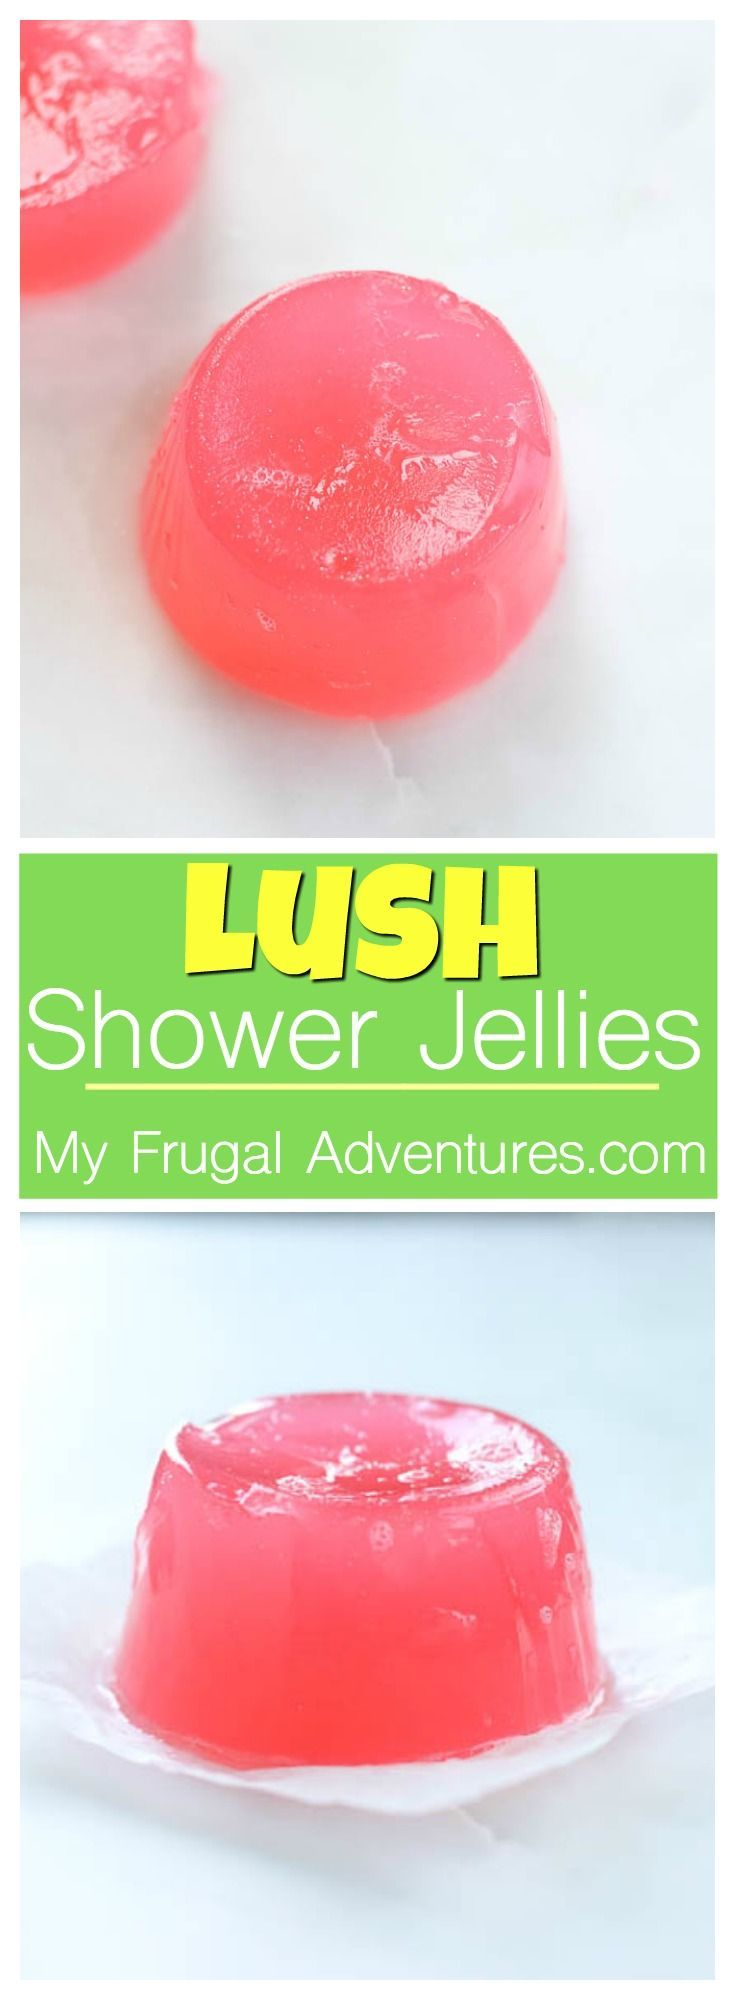 Homemade Bath jellies- just like Lush!  Such a fun homemade gift idea.